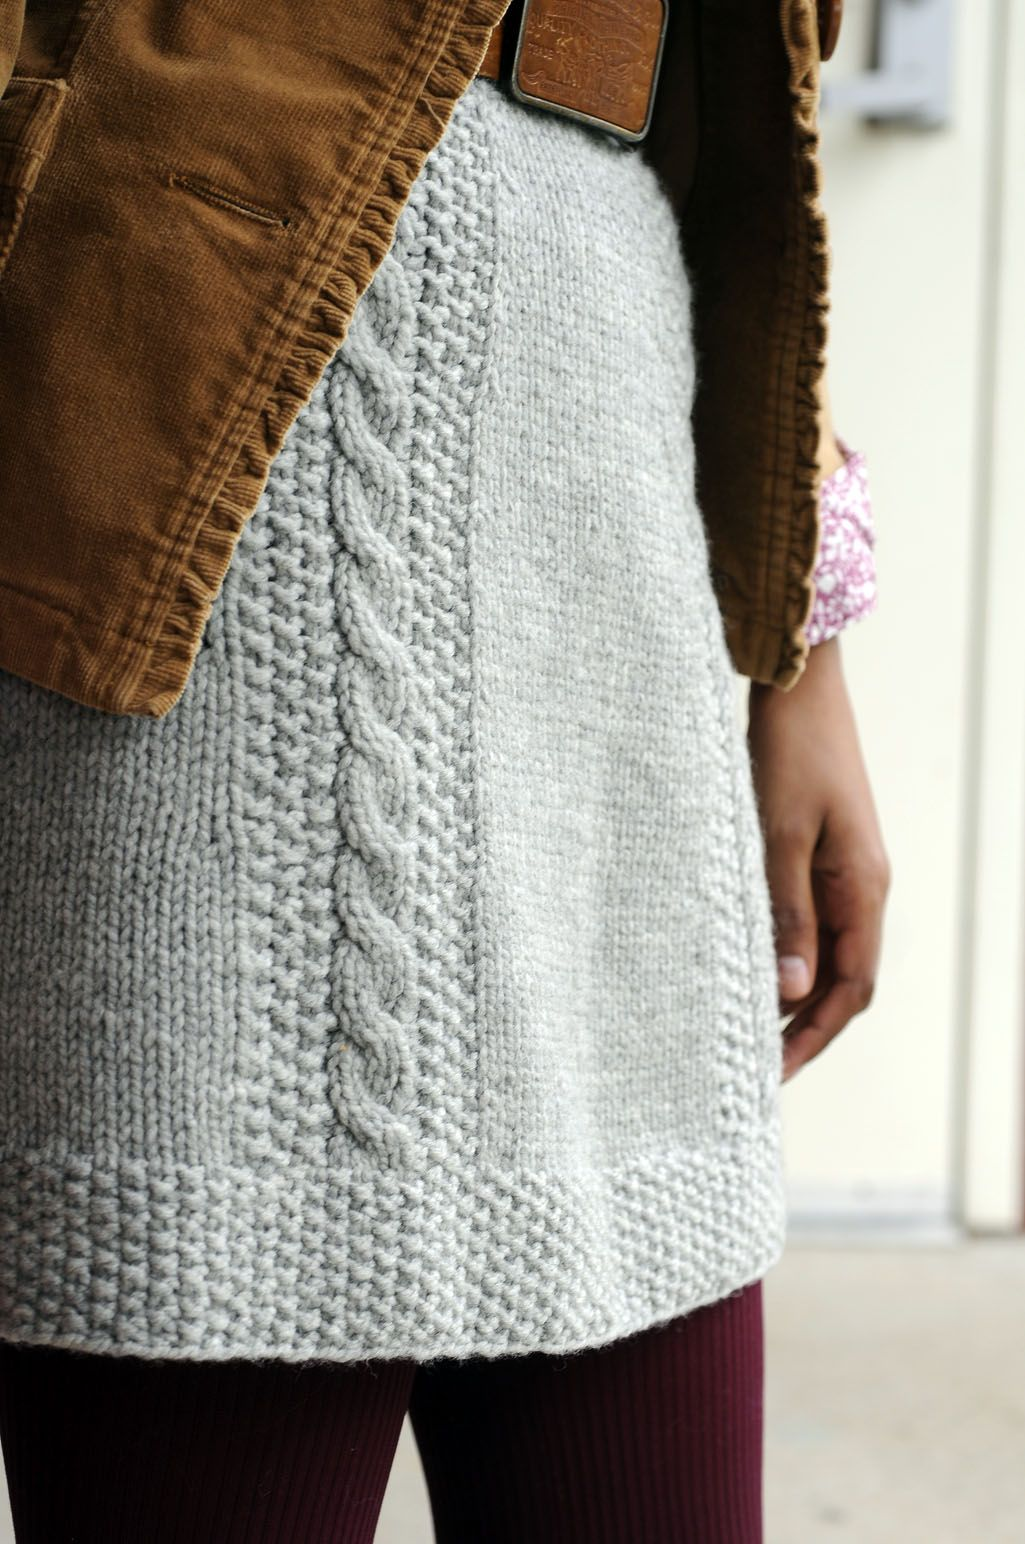 Knitting: Magazines, eBooks, Videos, Articles, Guides | Knit skirt ...